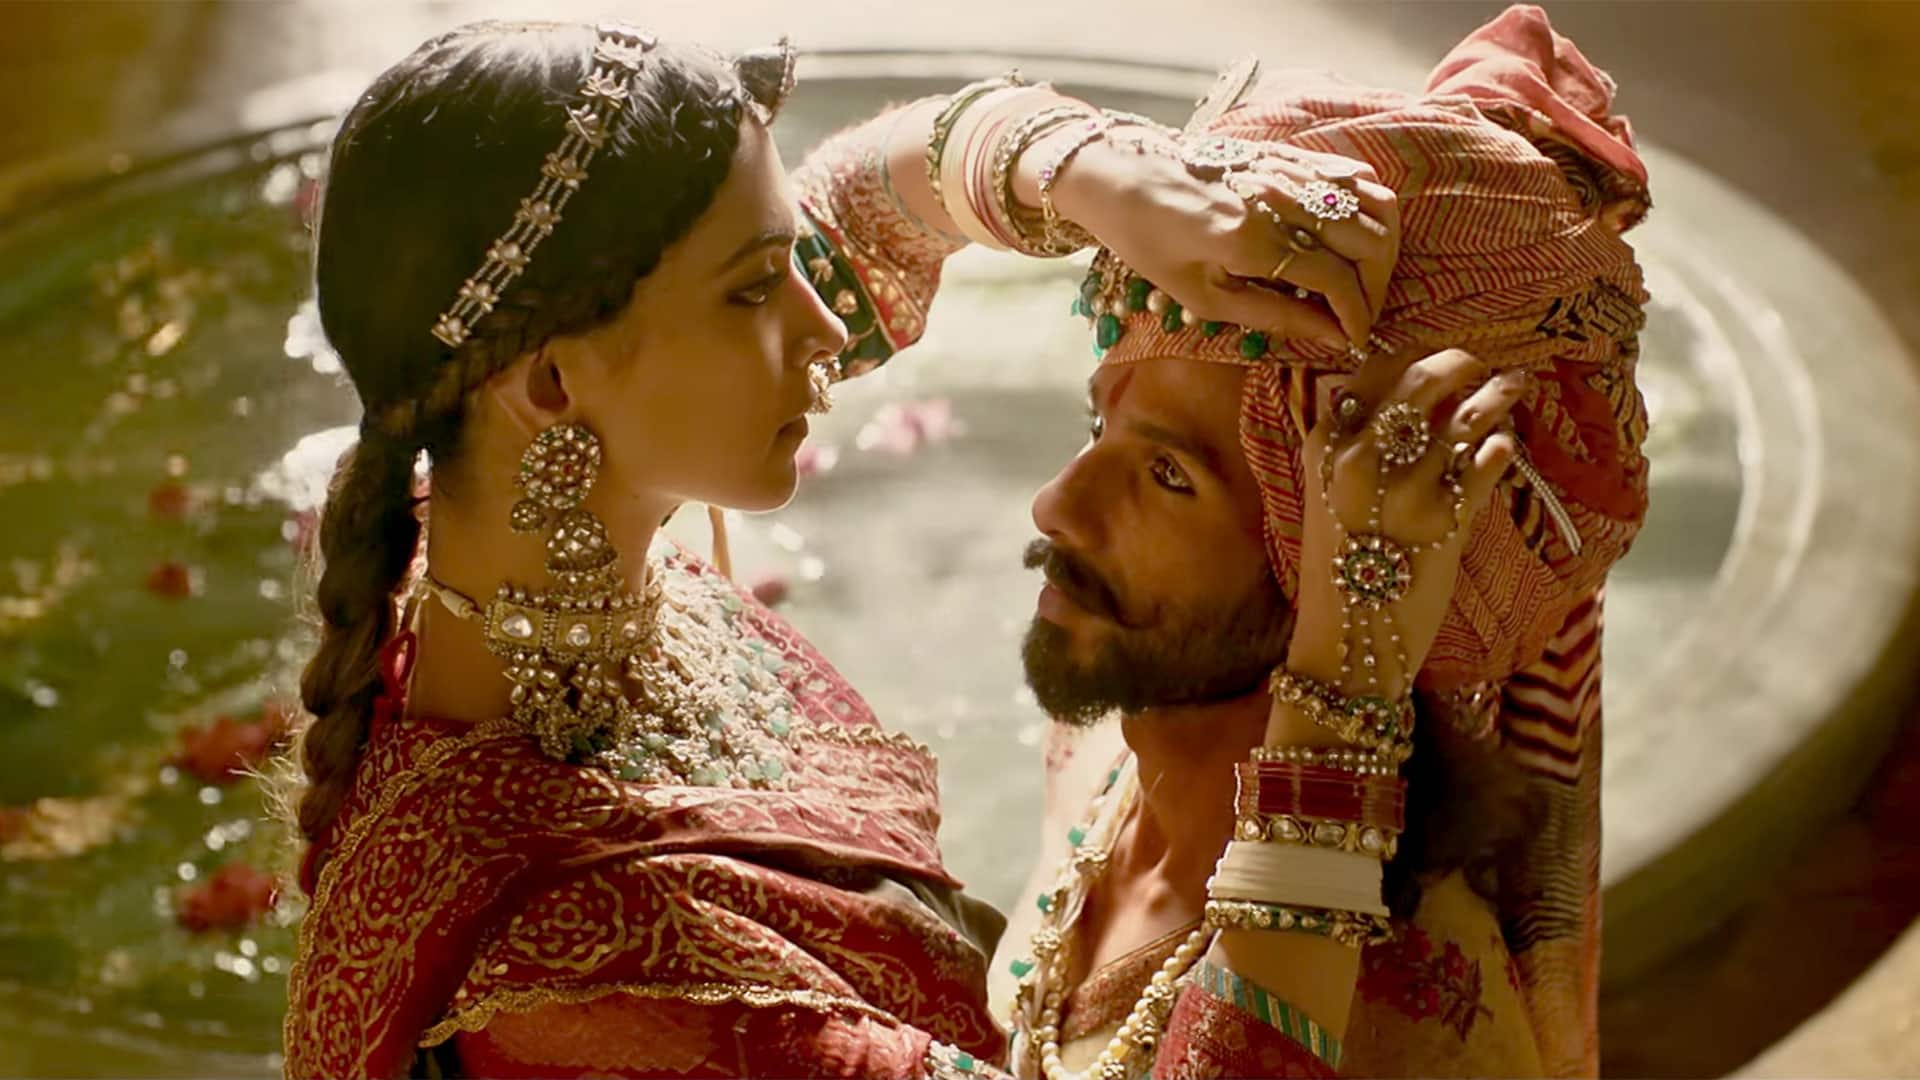 The 15 Most Controversial Films in Indian Cinema